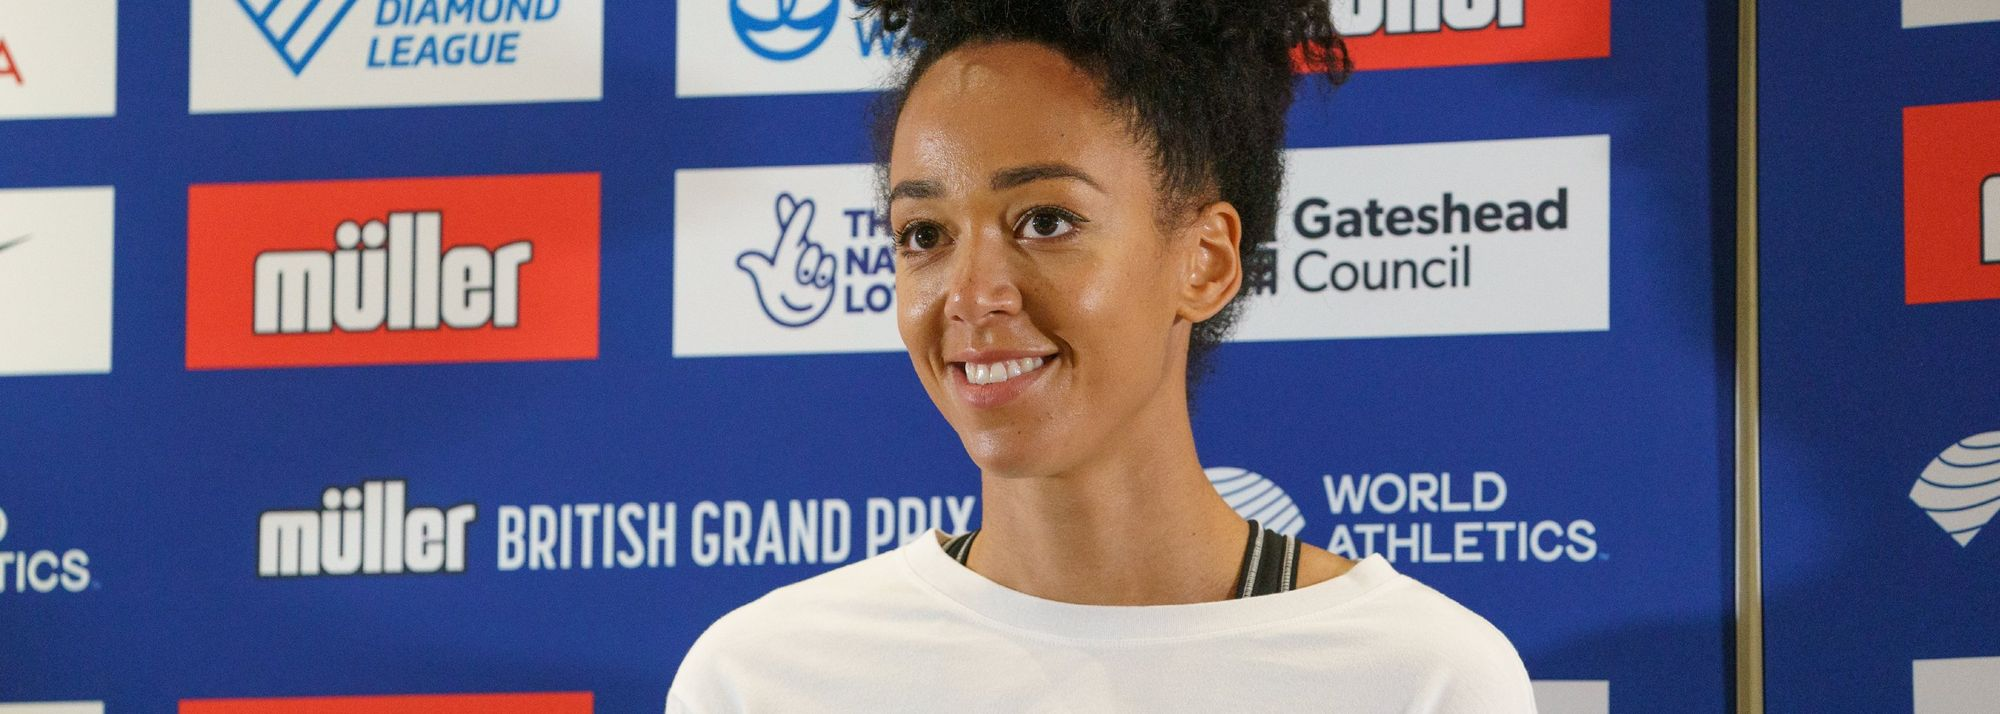 Seven months after tearing her achilles tendon, world heptathlon champion Katarina Johnson-Thompson believes she will be ready to contend for a medal at the upcoming Tokyo Olympic Games.